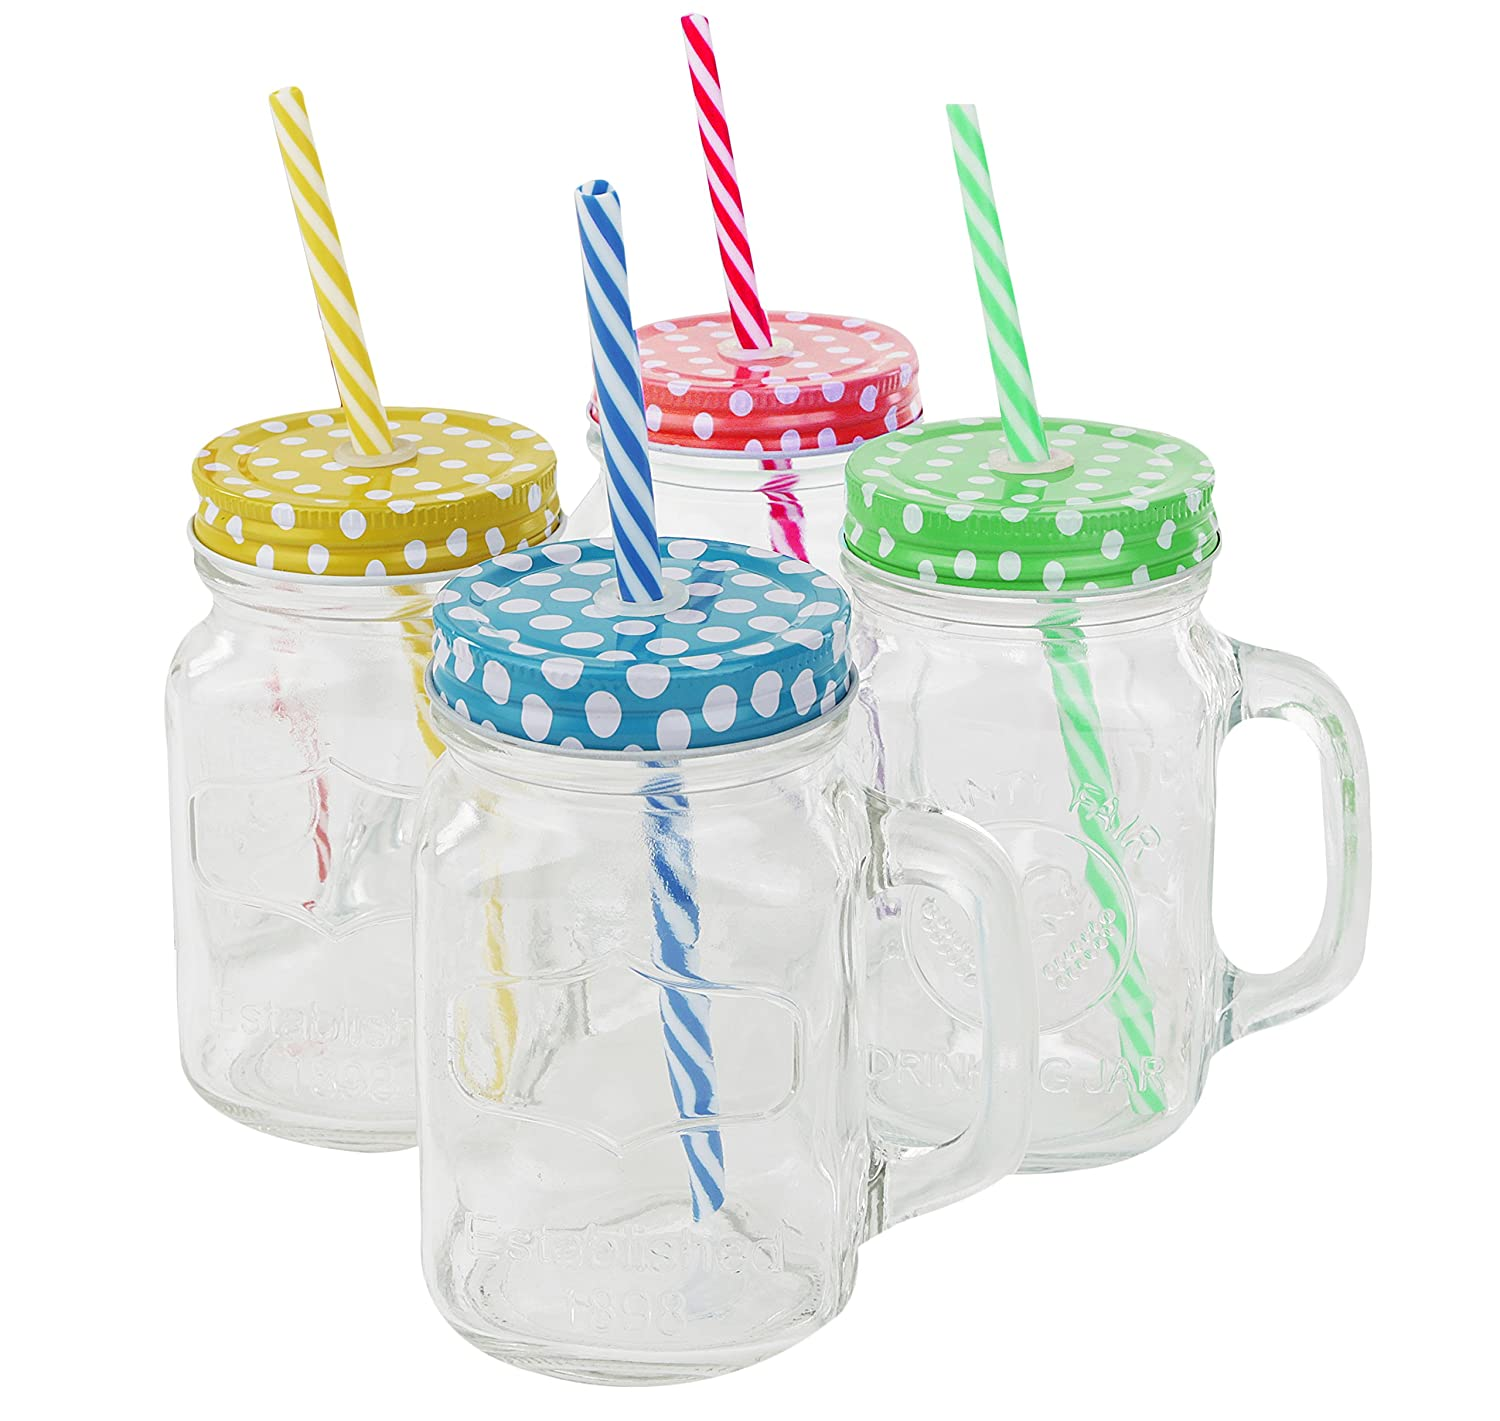 Golden Spoon Glass Drinking Jar with Handle, Stainless Steel Lid, Stainless Steel Colored Lid, Colored Straws, Dishwasher Safe, BPA Free, Set of 4 (16 oz/Pint)